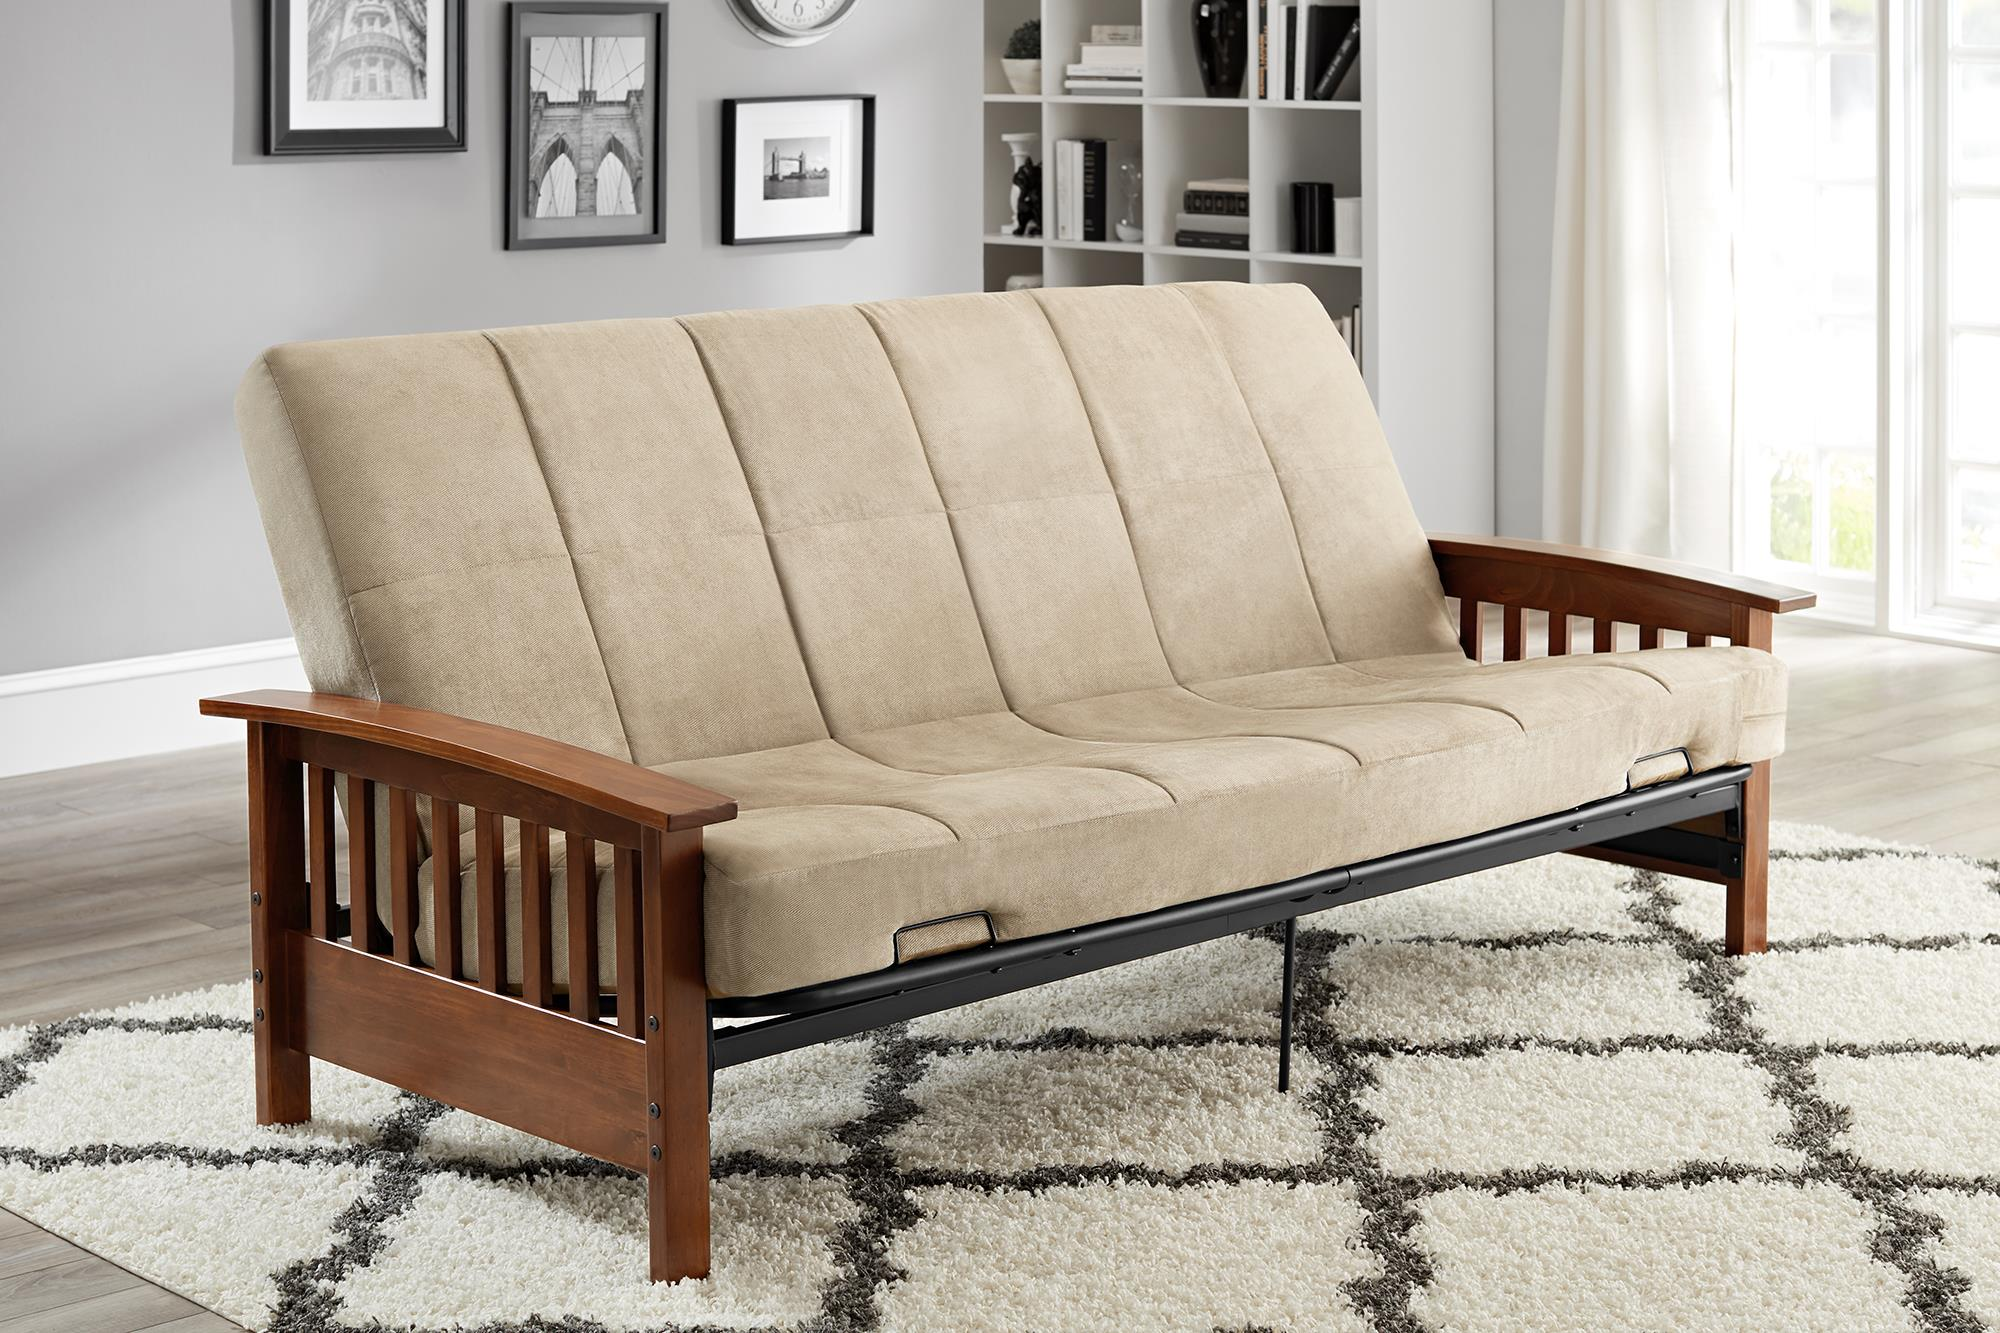 better homes and gardens mission wood arm futon multiple colors better homes and gardens mission wood arm futon multiple colors      rh   walmart